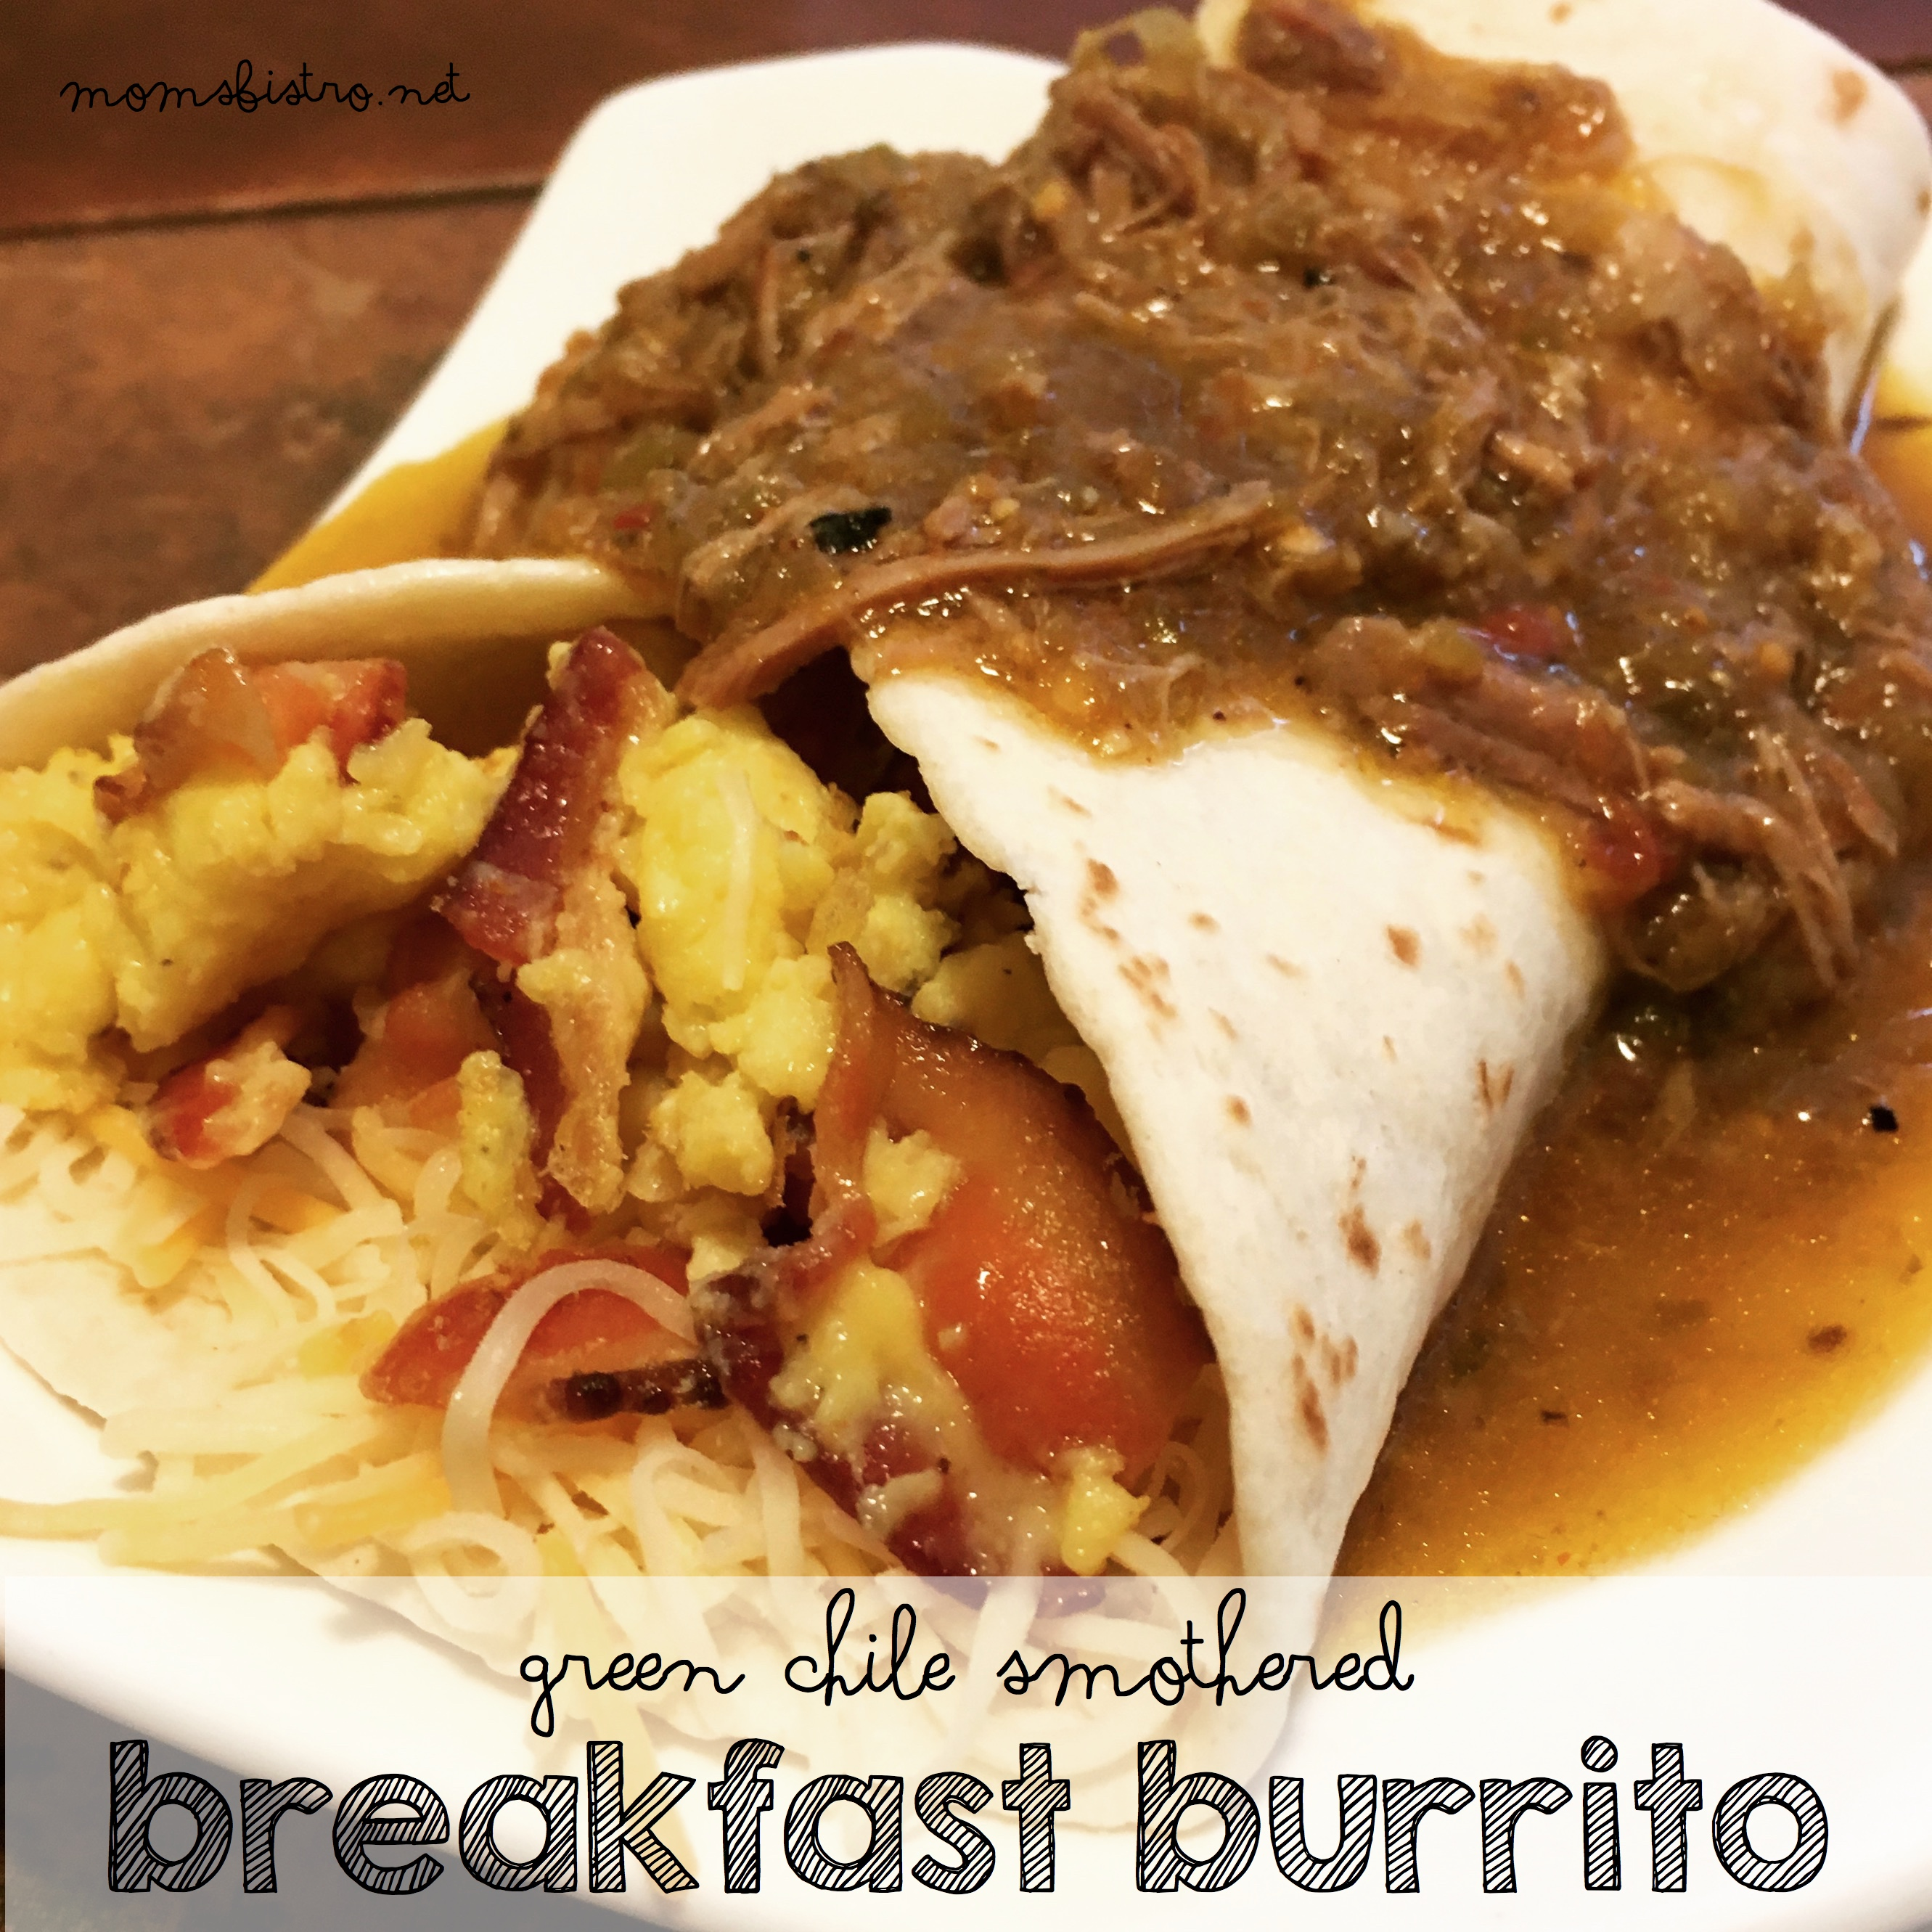 The Ultimate Breakfast Burrito!  Green Chile Smothered Breakfast Burrito Recipe